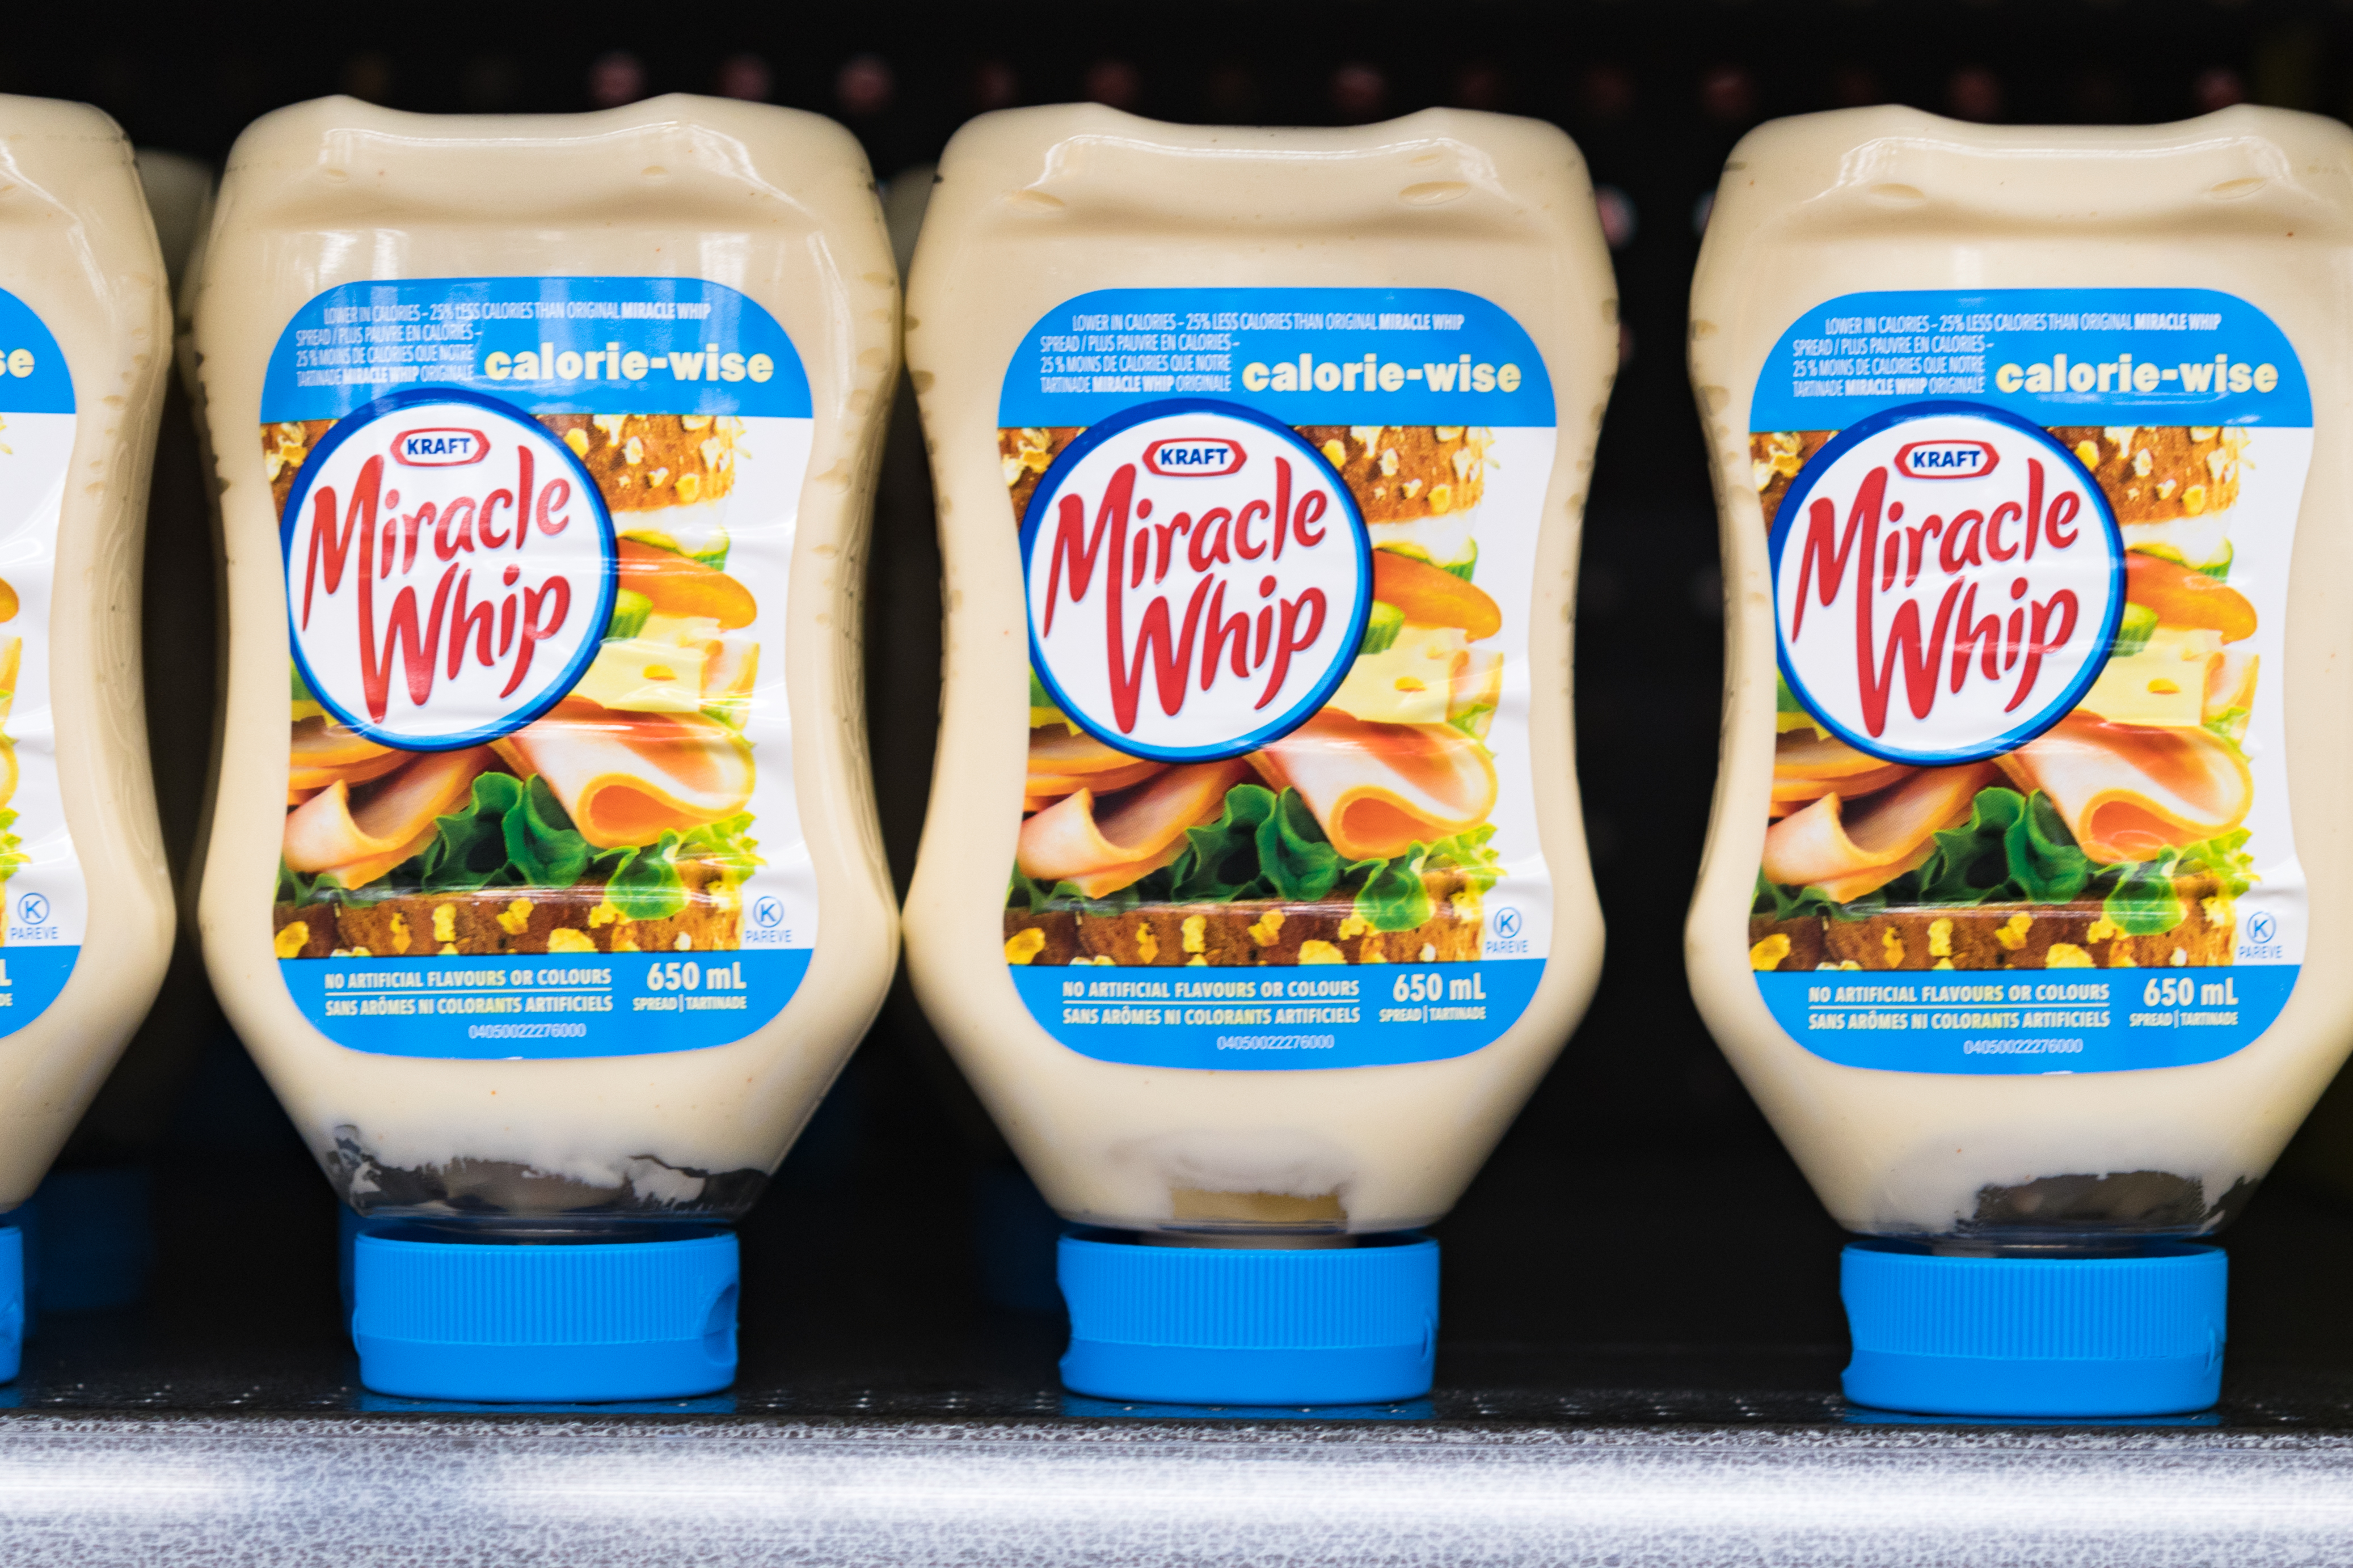 TORONTO, ONTARIO, CANADA - 2017/09/13: Kraft Miracle Whip on a store shelf, salad dressing bottles placed upside down in a row. (Photo by Roberto Machado Noa/LightRocket via Getty Images)